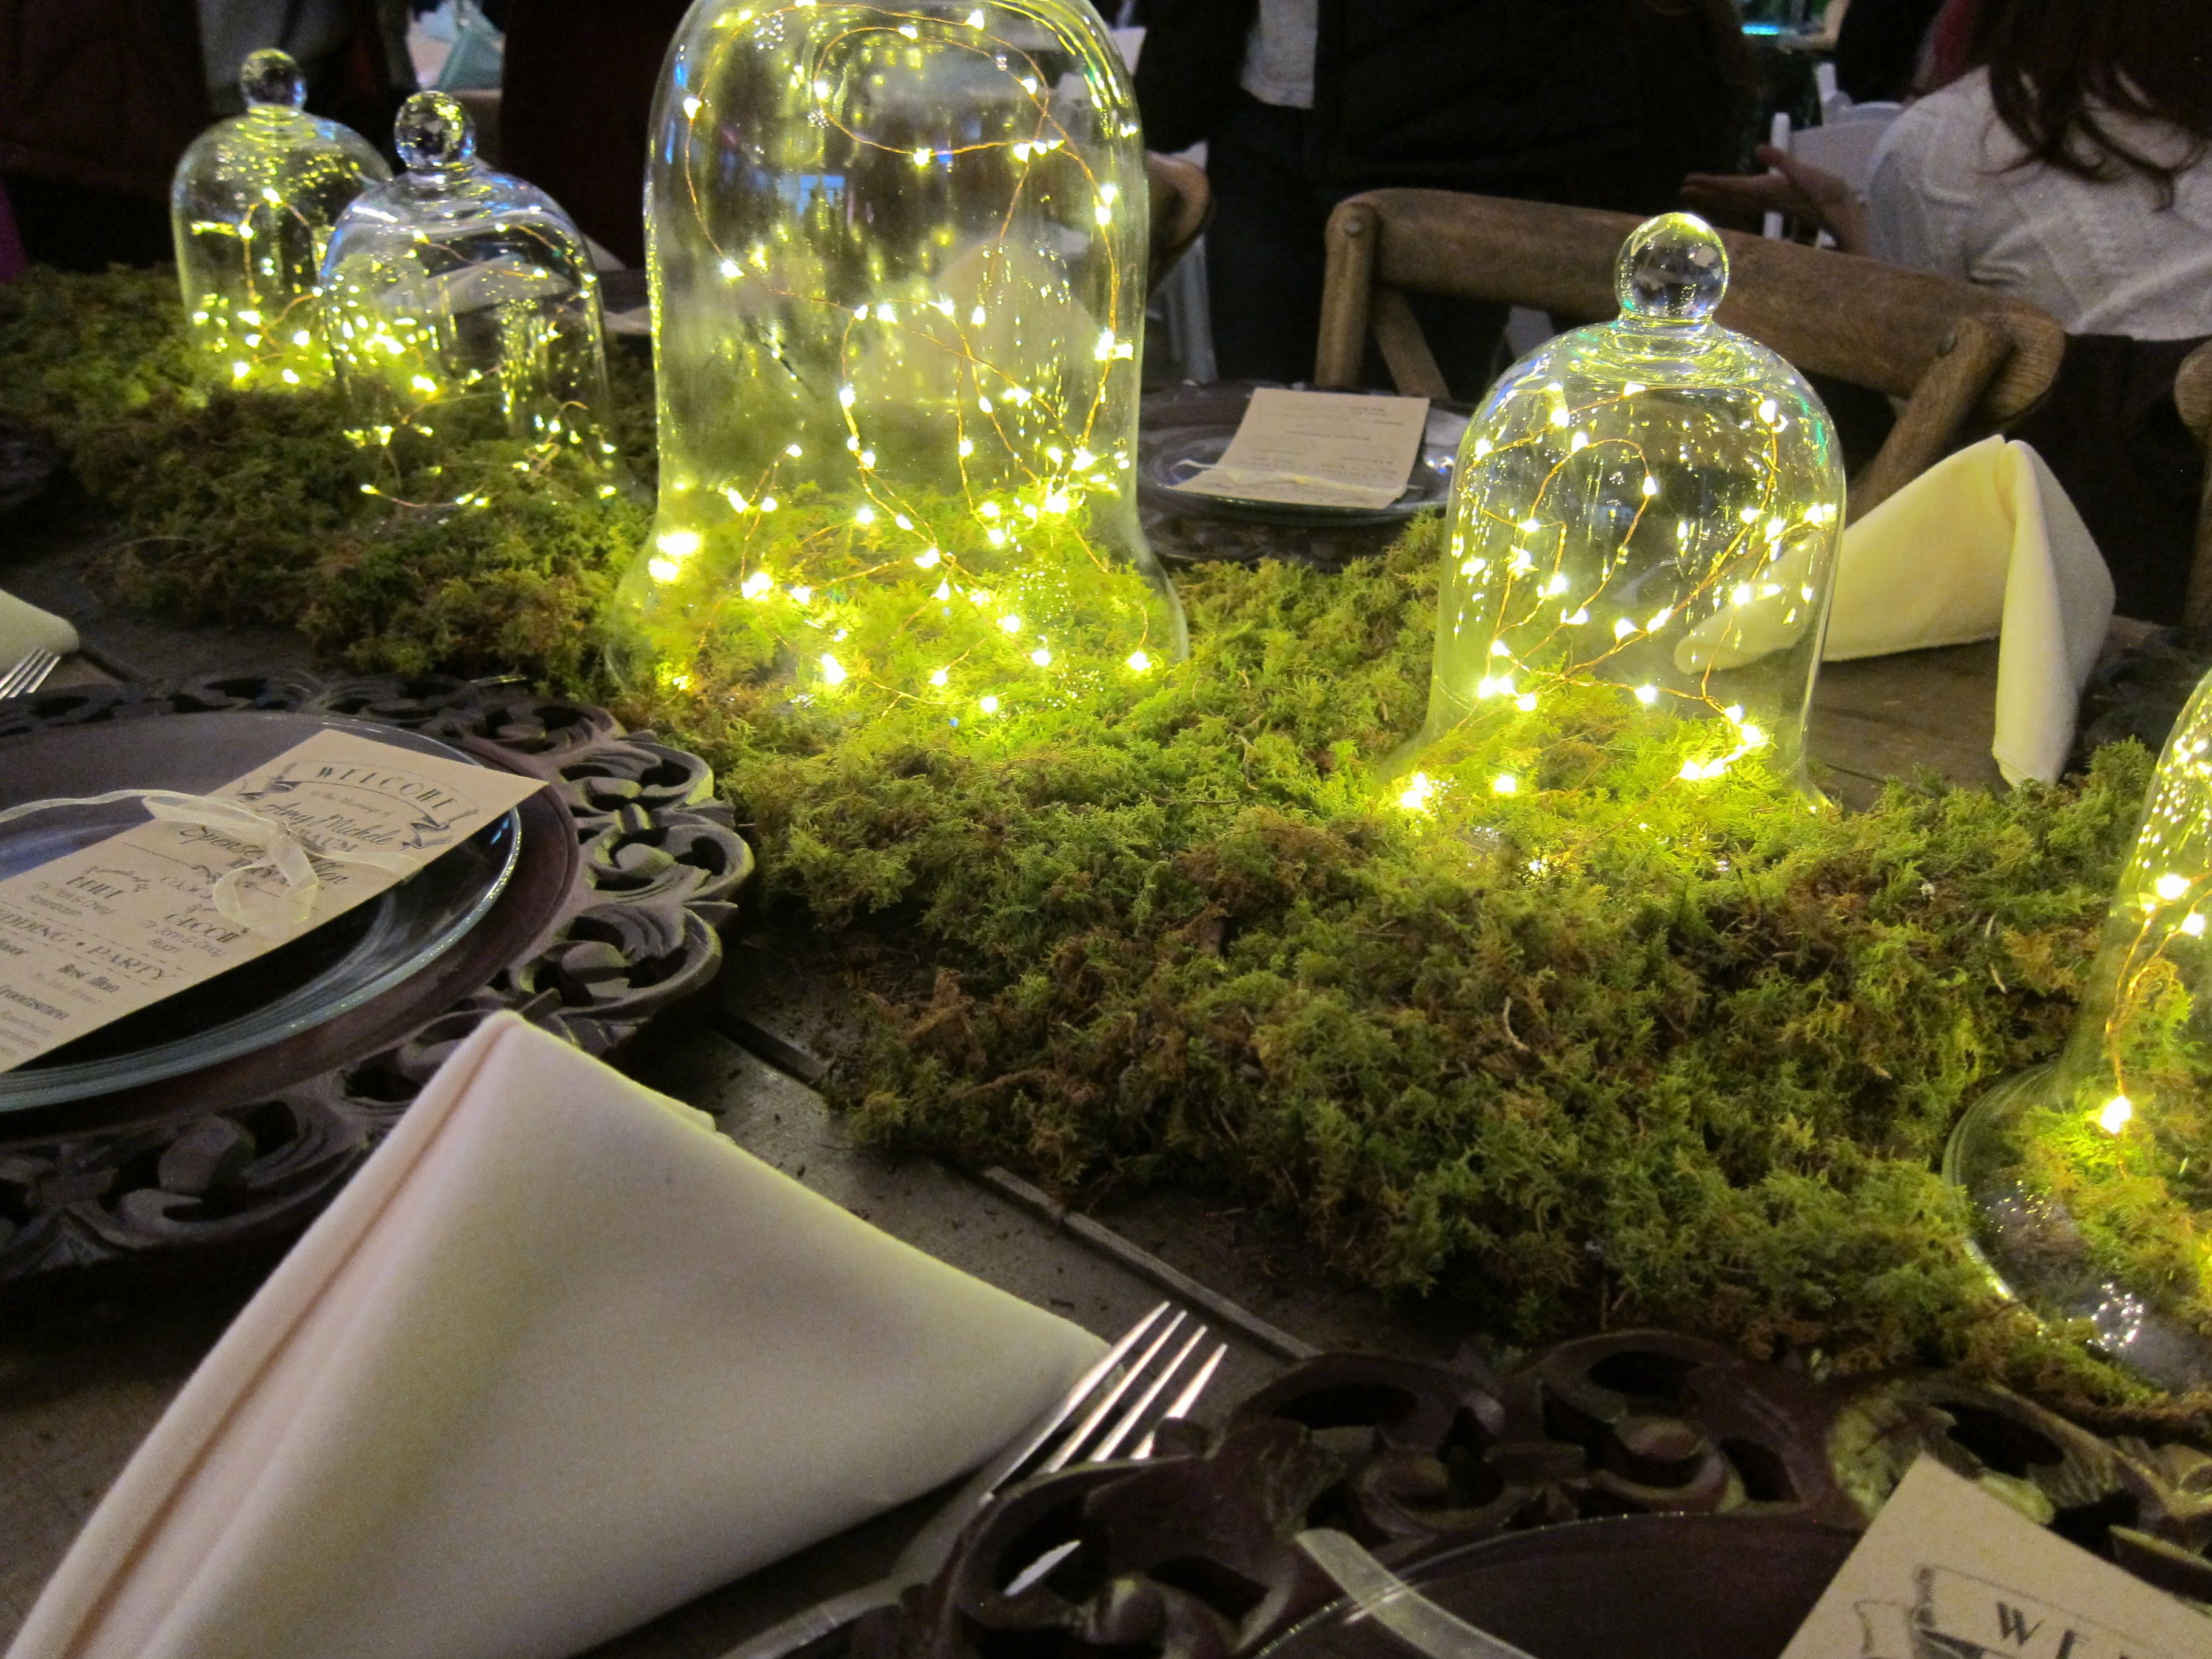 Genial Hunter Valley Farms, Knoxville, Bridal Show, Cloche With String Lights,  Centerpiece Wedding Reception